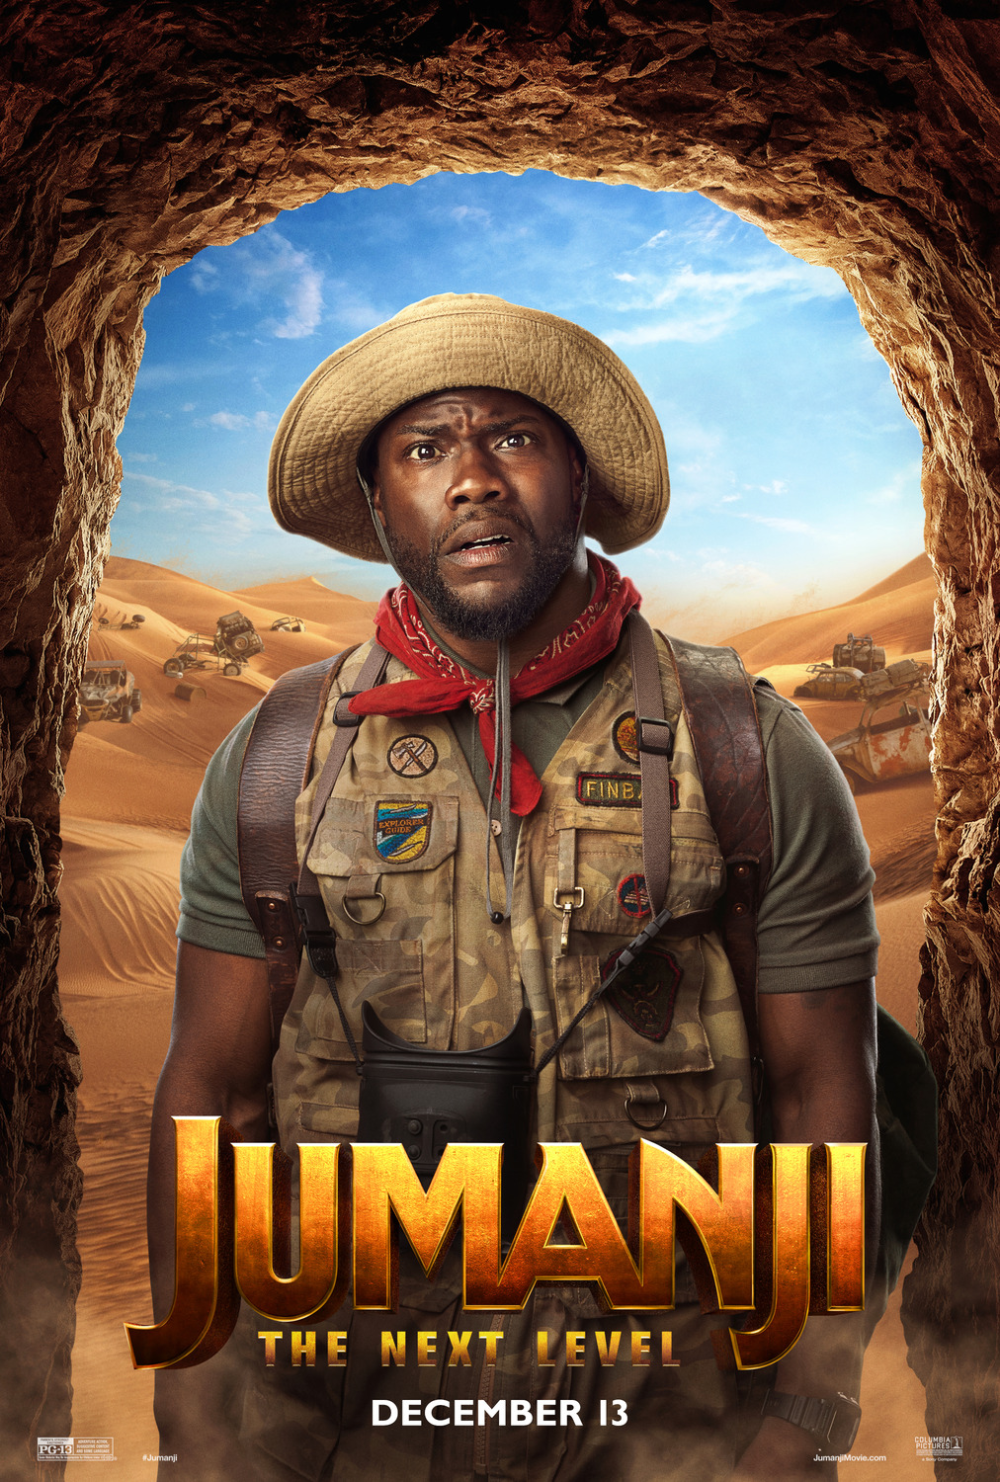 Jumanji The Next Level Kevin Hart As Mouse Finbar Free Movies Online Comedy Movies Posters Full Movies Online Free